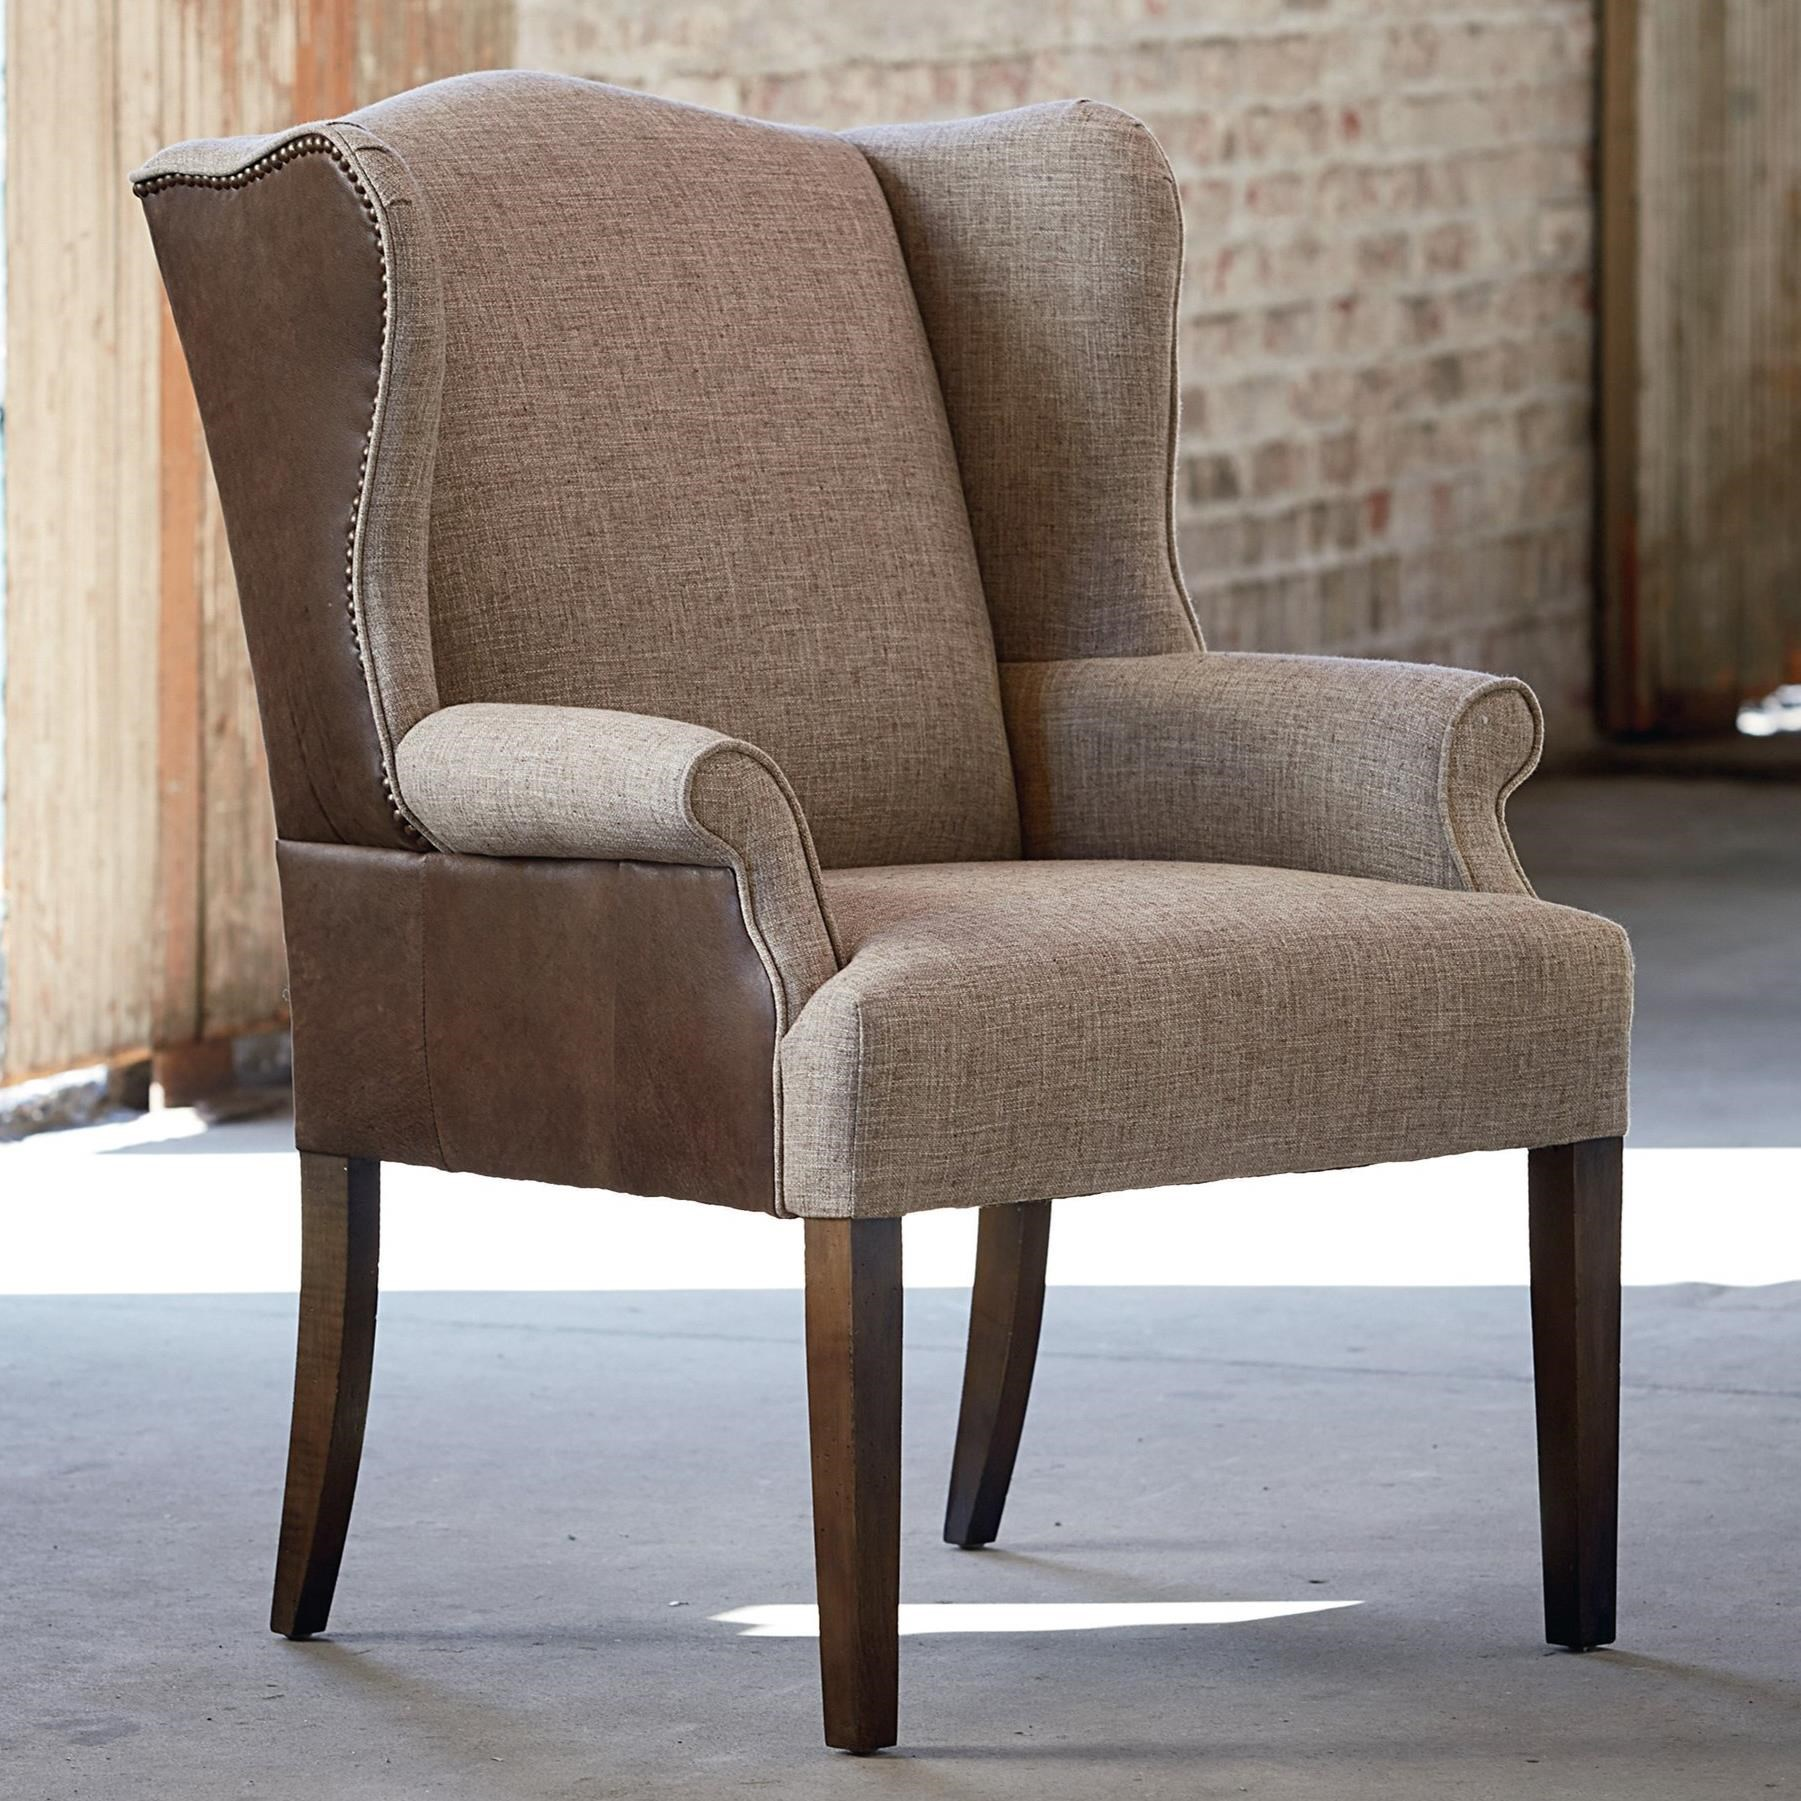 Arden Leather/Fabric Dining Chair by Bassett at H.L. Stephens